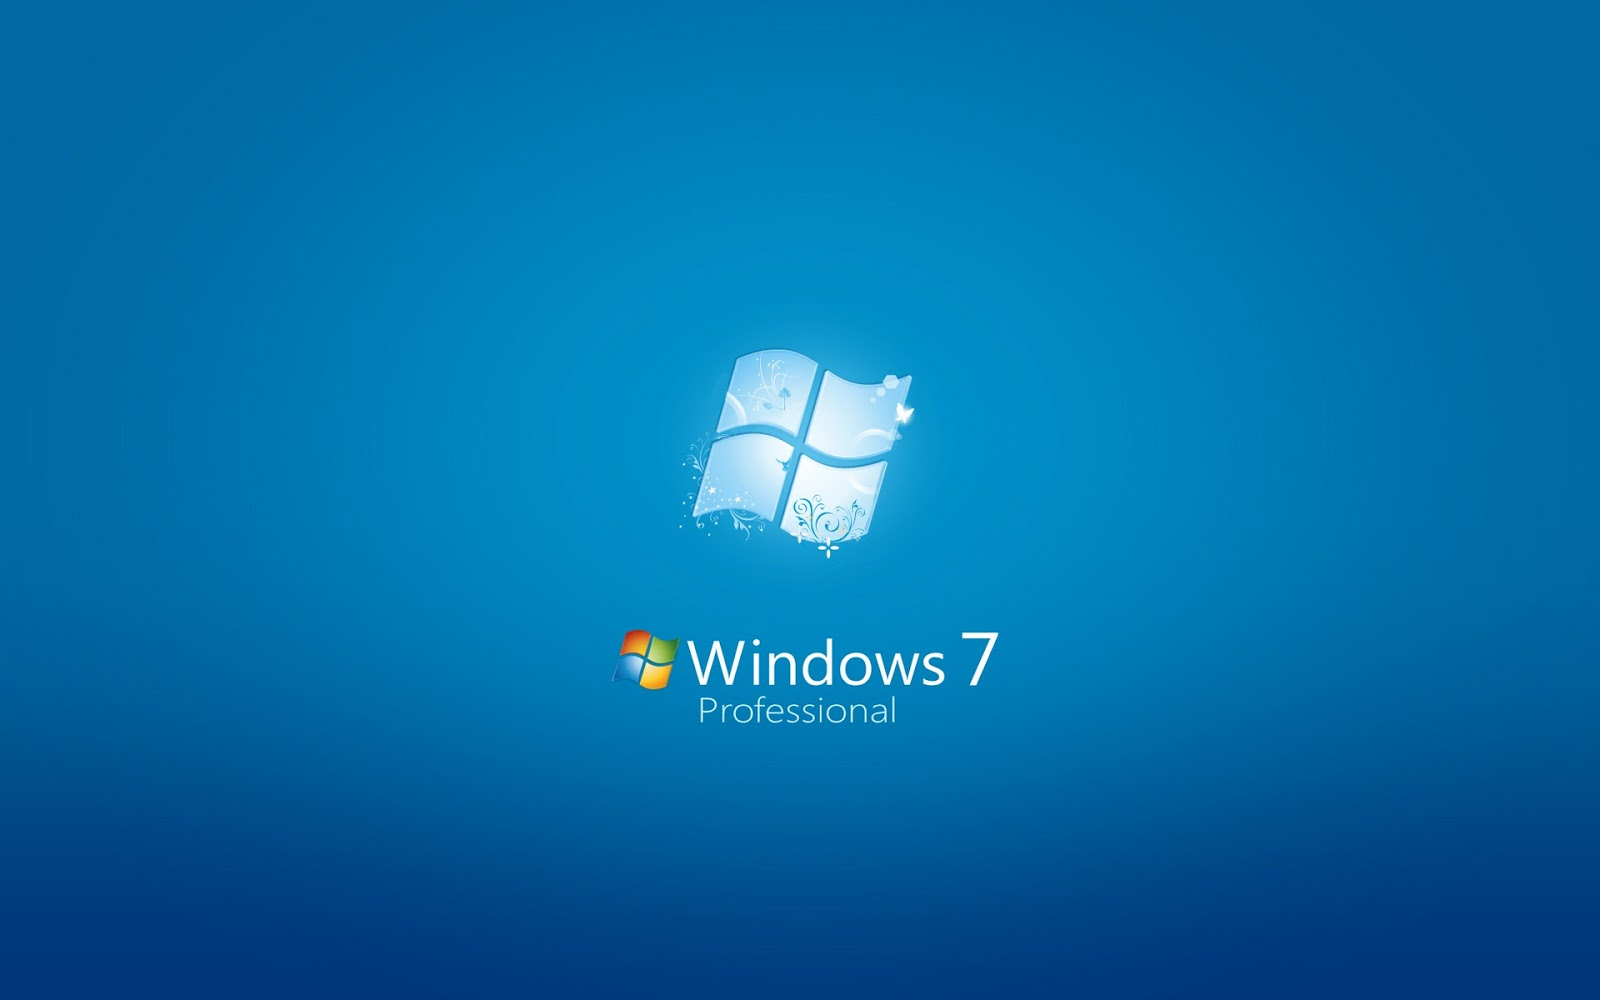 Product key windows 7 professional free update daily